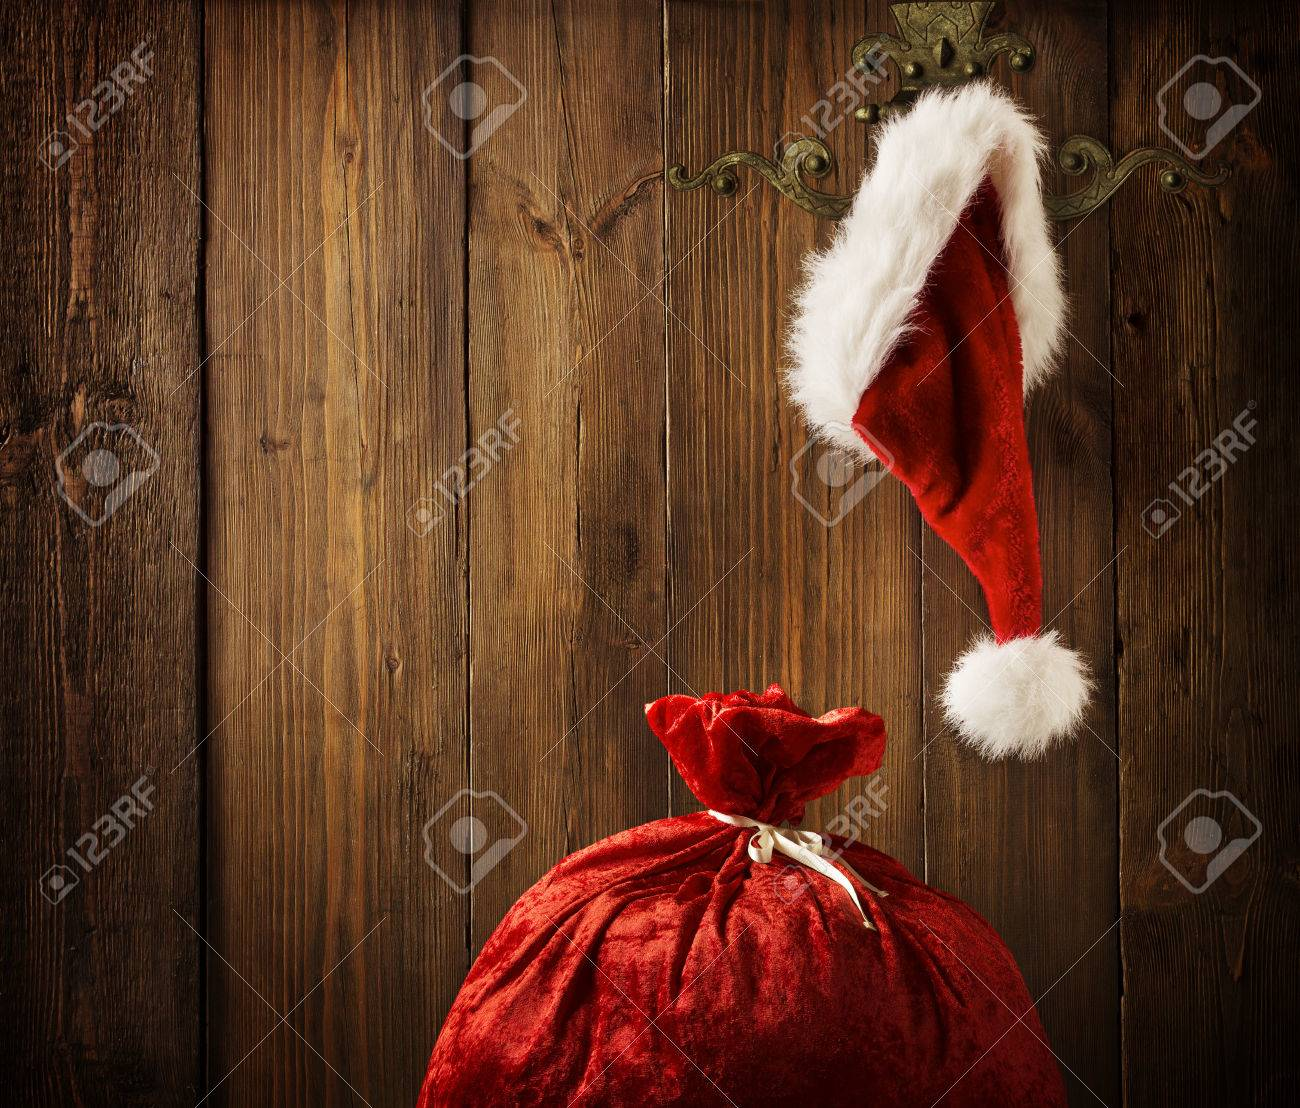 Christmas Santa Claus Hat Hanging On Wood Wall, Xmas Concept, Decoration Over Grunge Wooden Background - 33657183